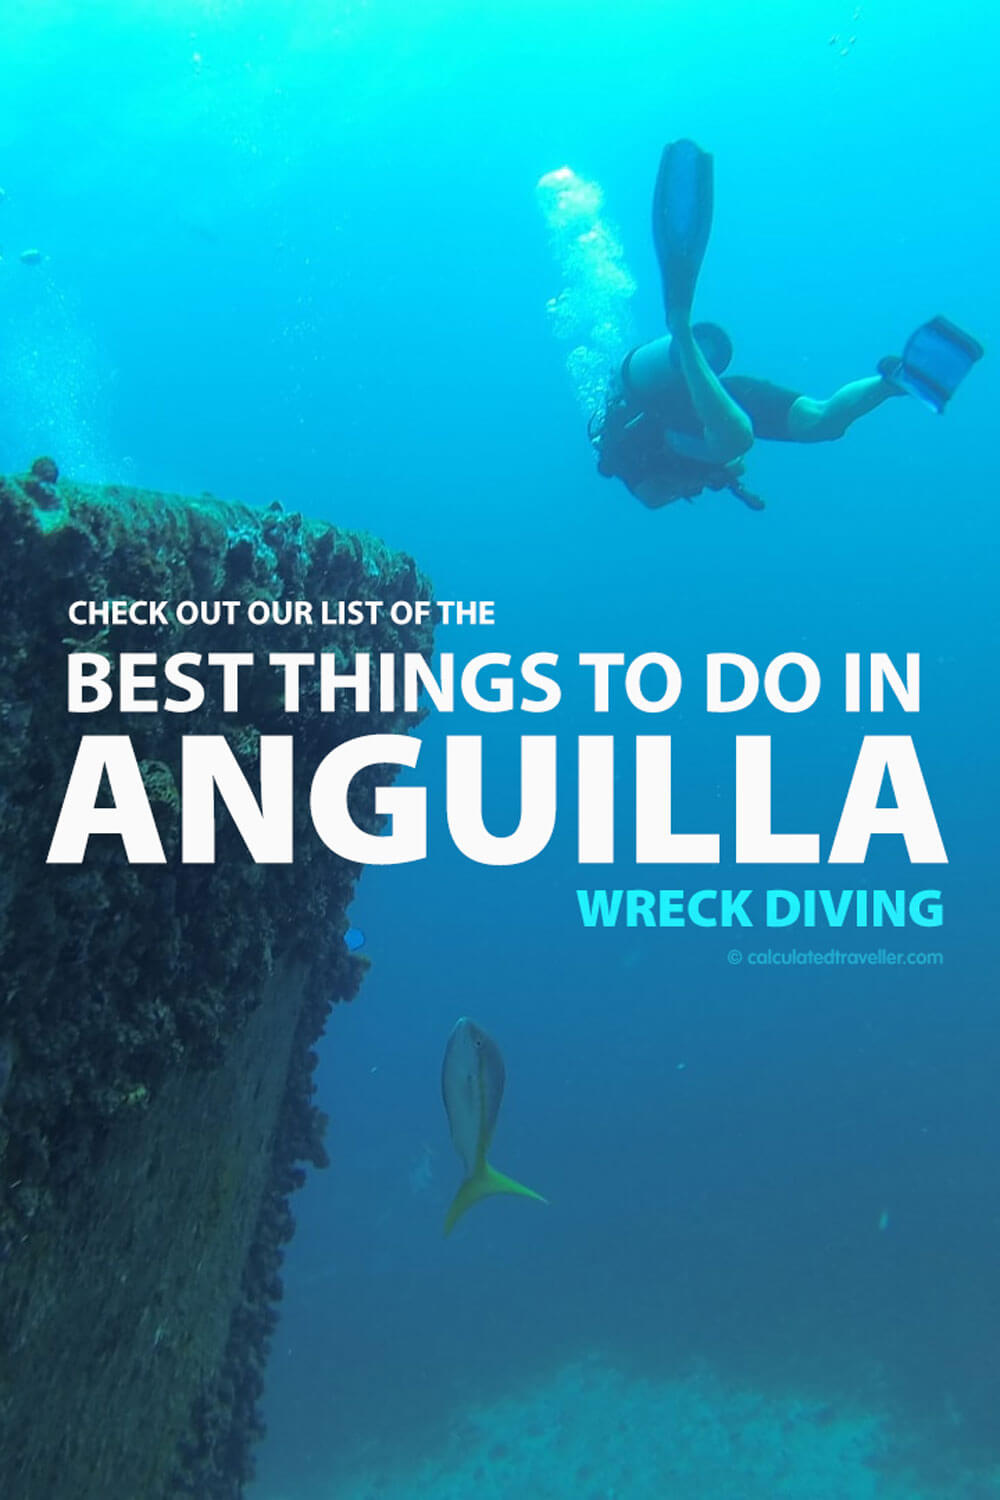 wreck diving - one of the best things to do in Anguilla British Caribbean